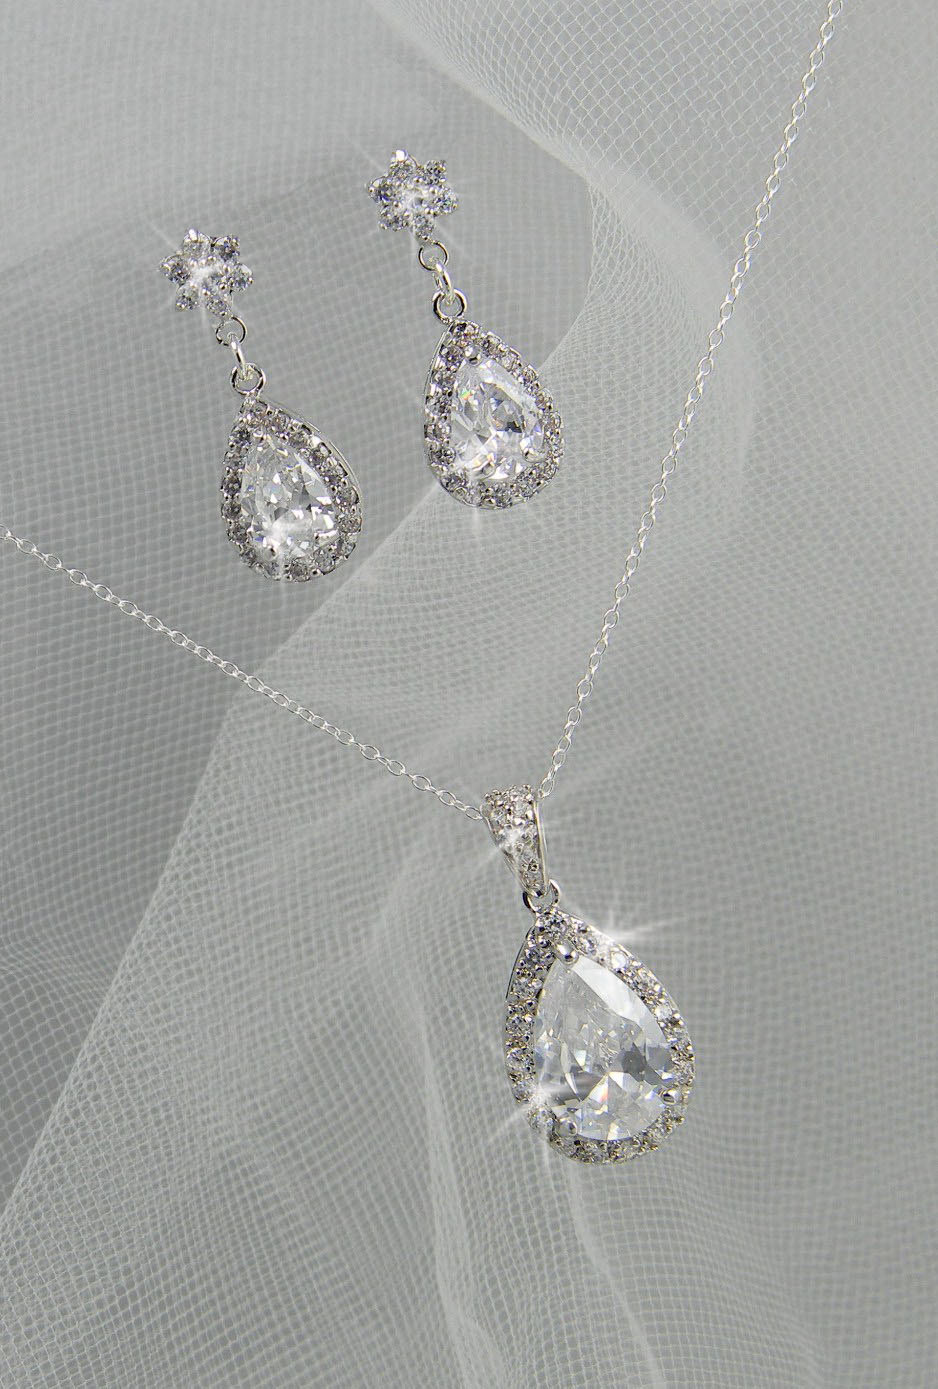 Wedding Jewelry Gift For Bride : Crystal Bridal Set. Bridesmaids Jewelry Set by CrystalAvenues